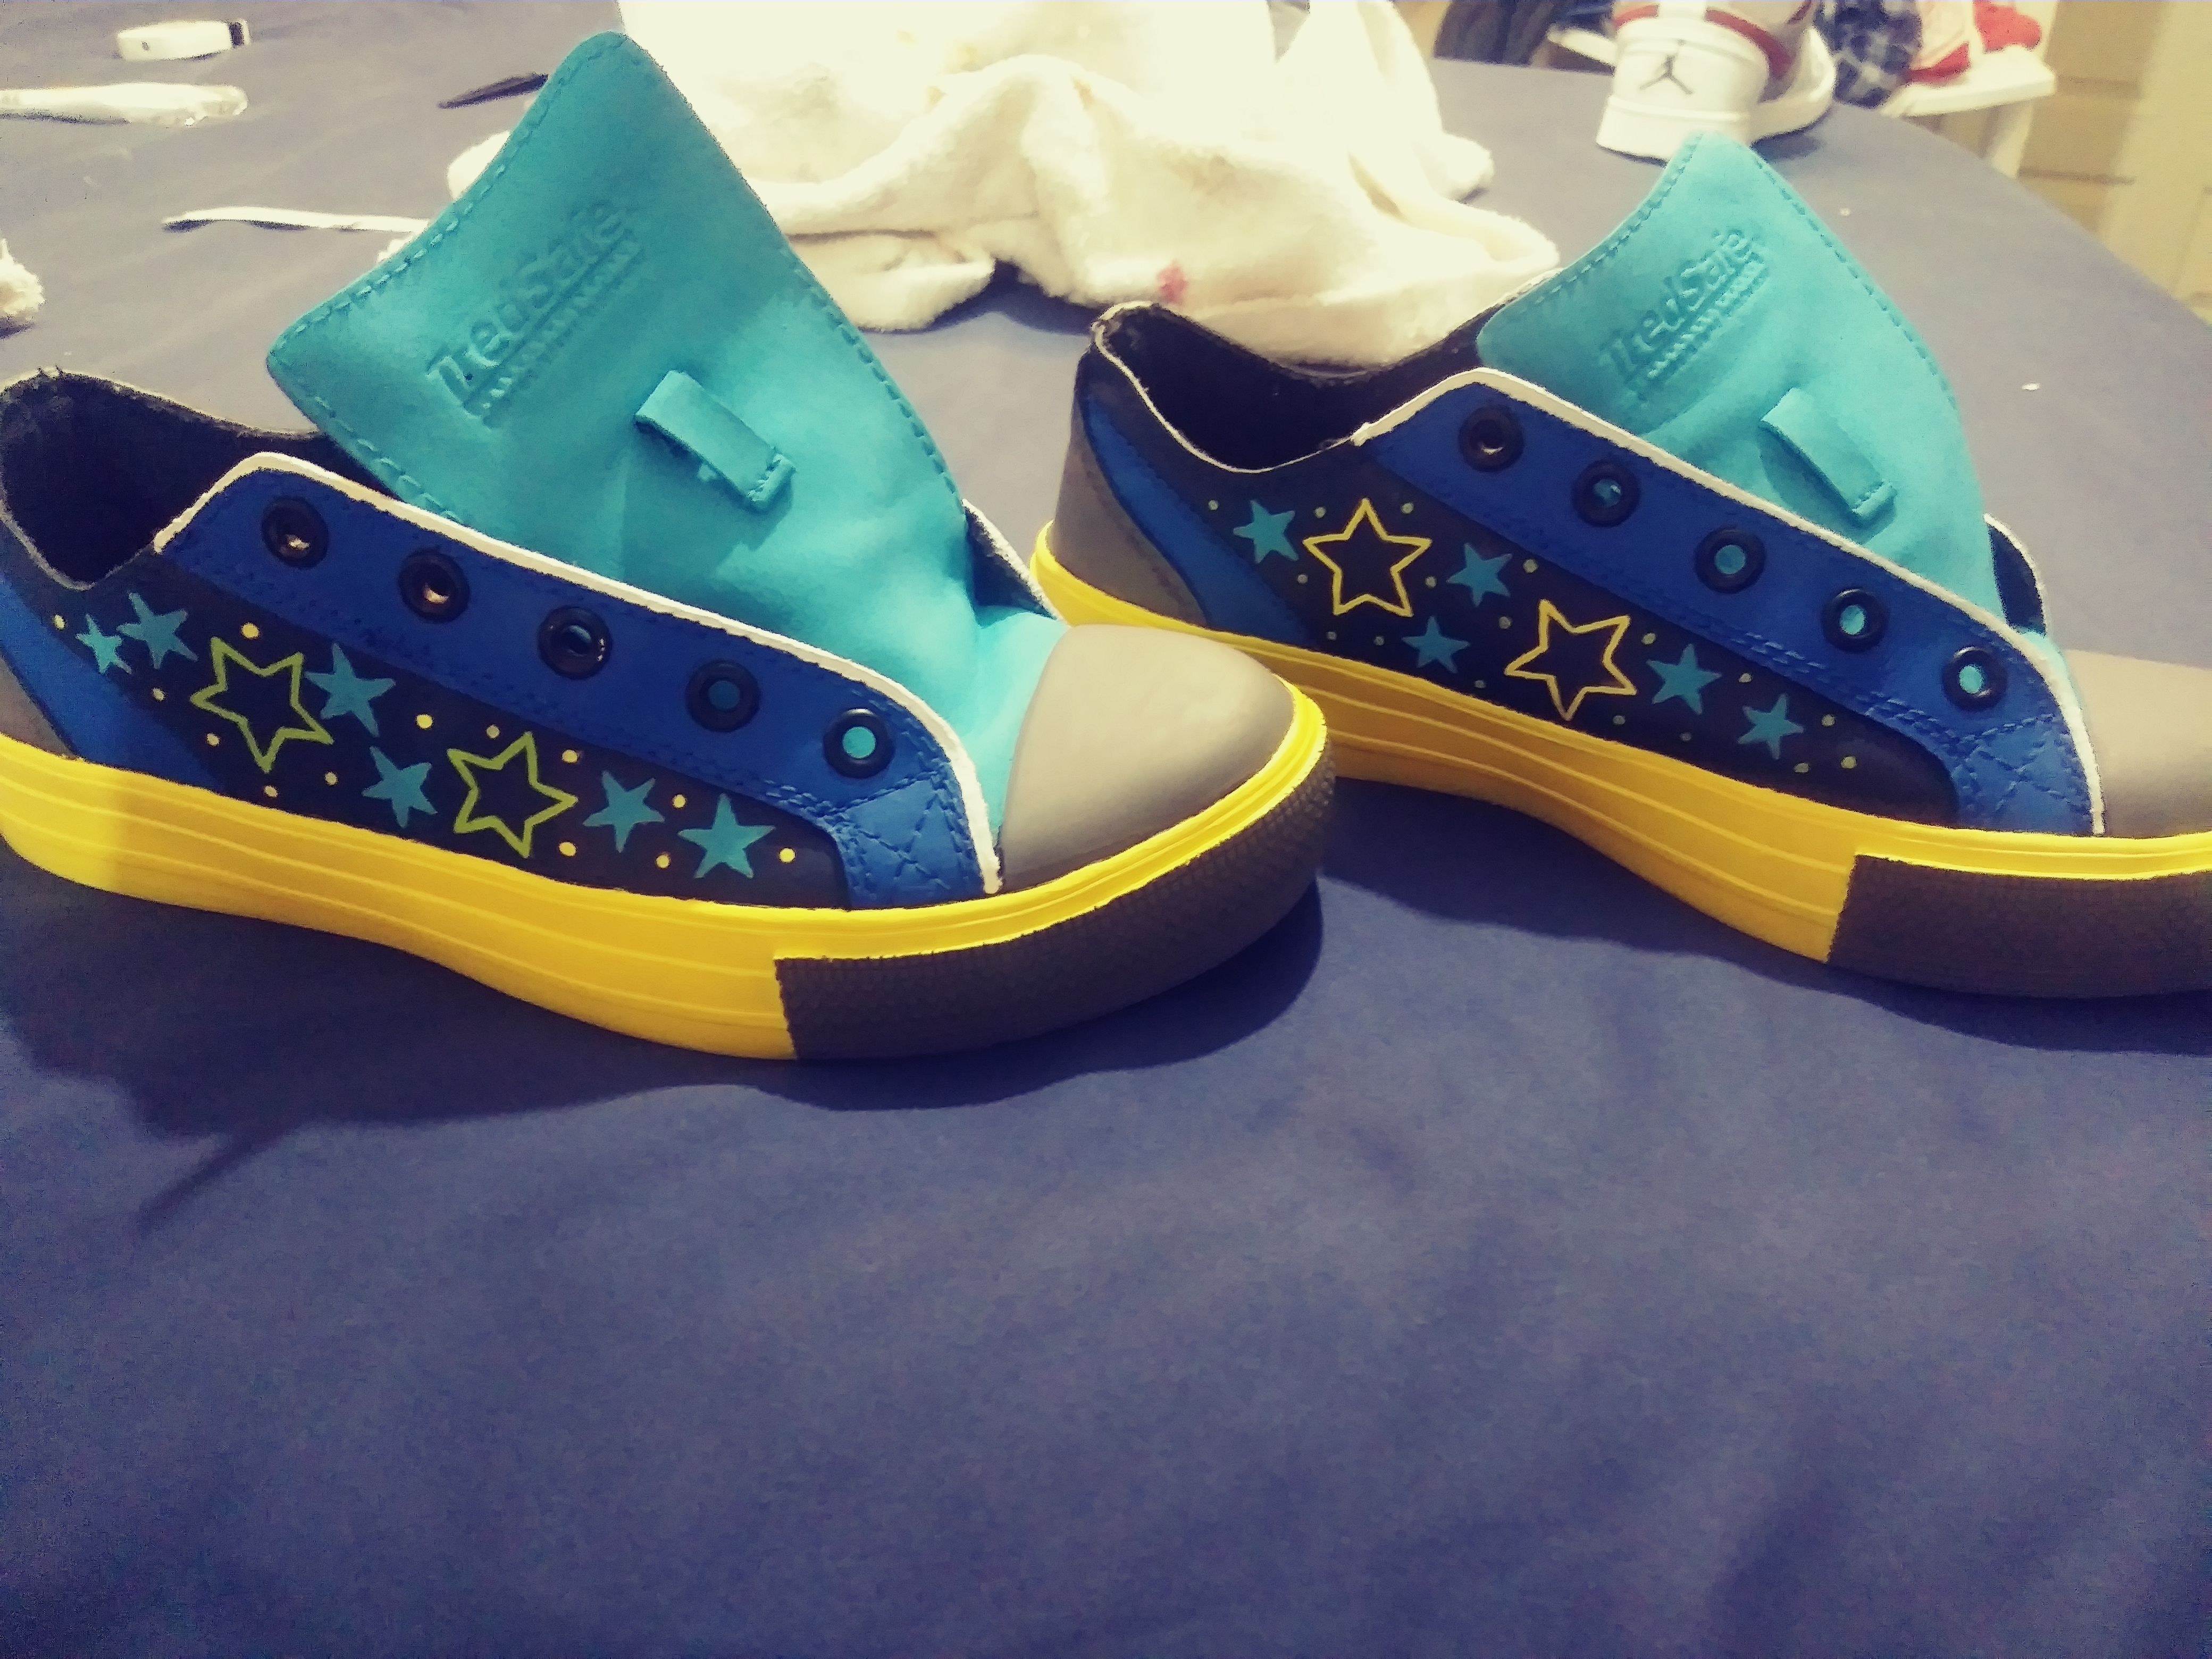 Hand painted, tredsafe shoes remade